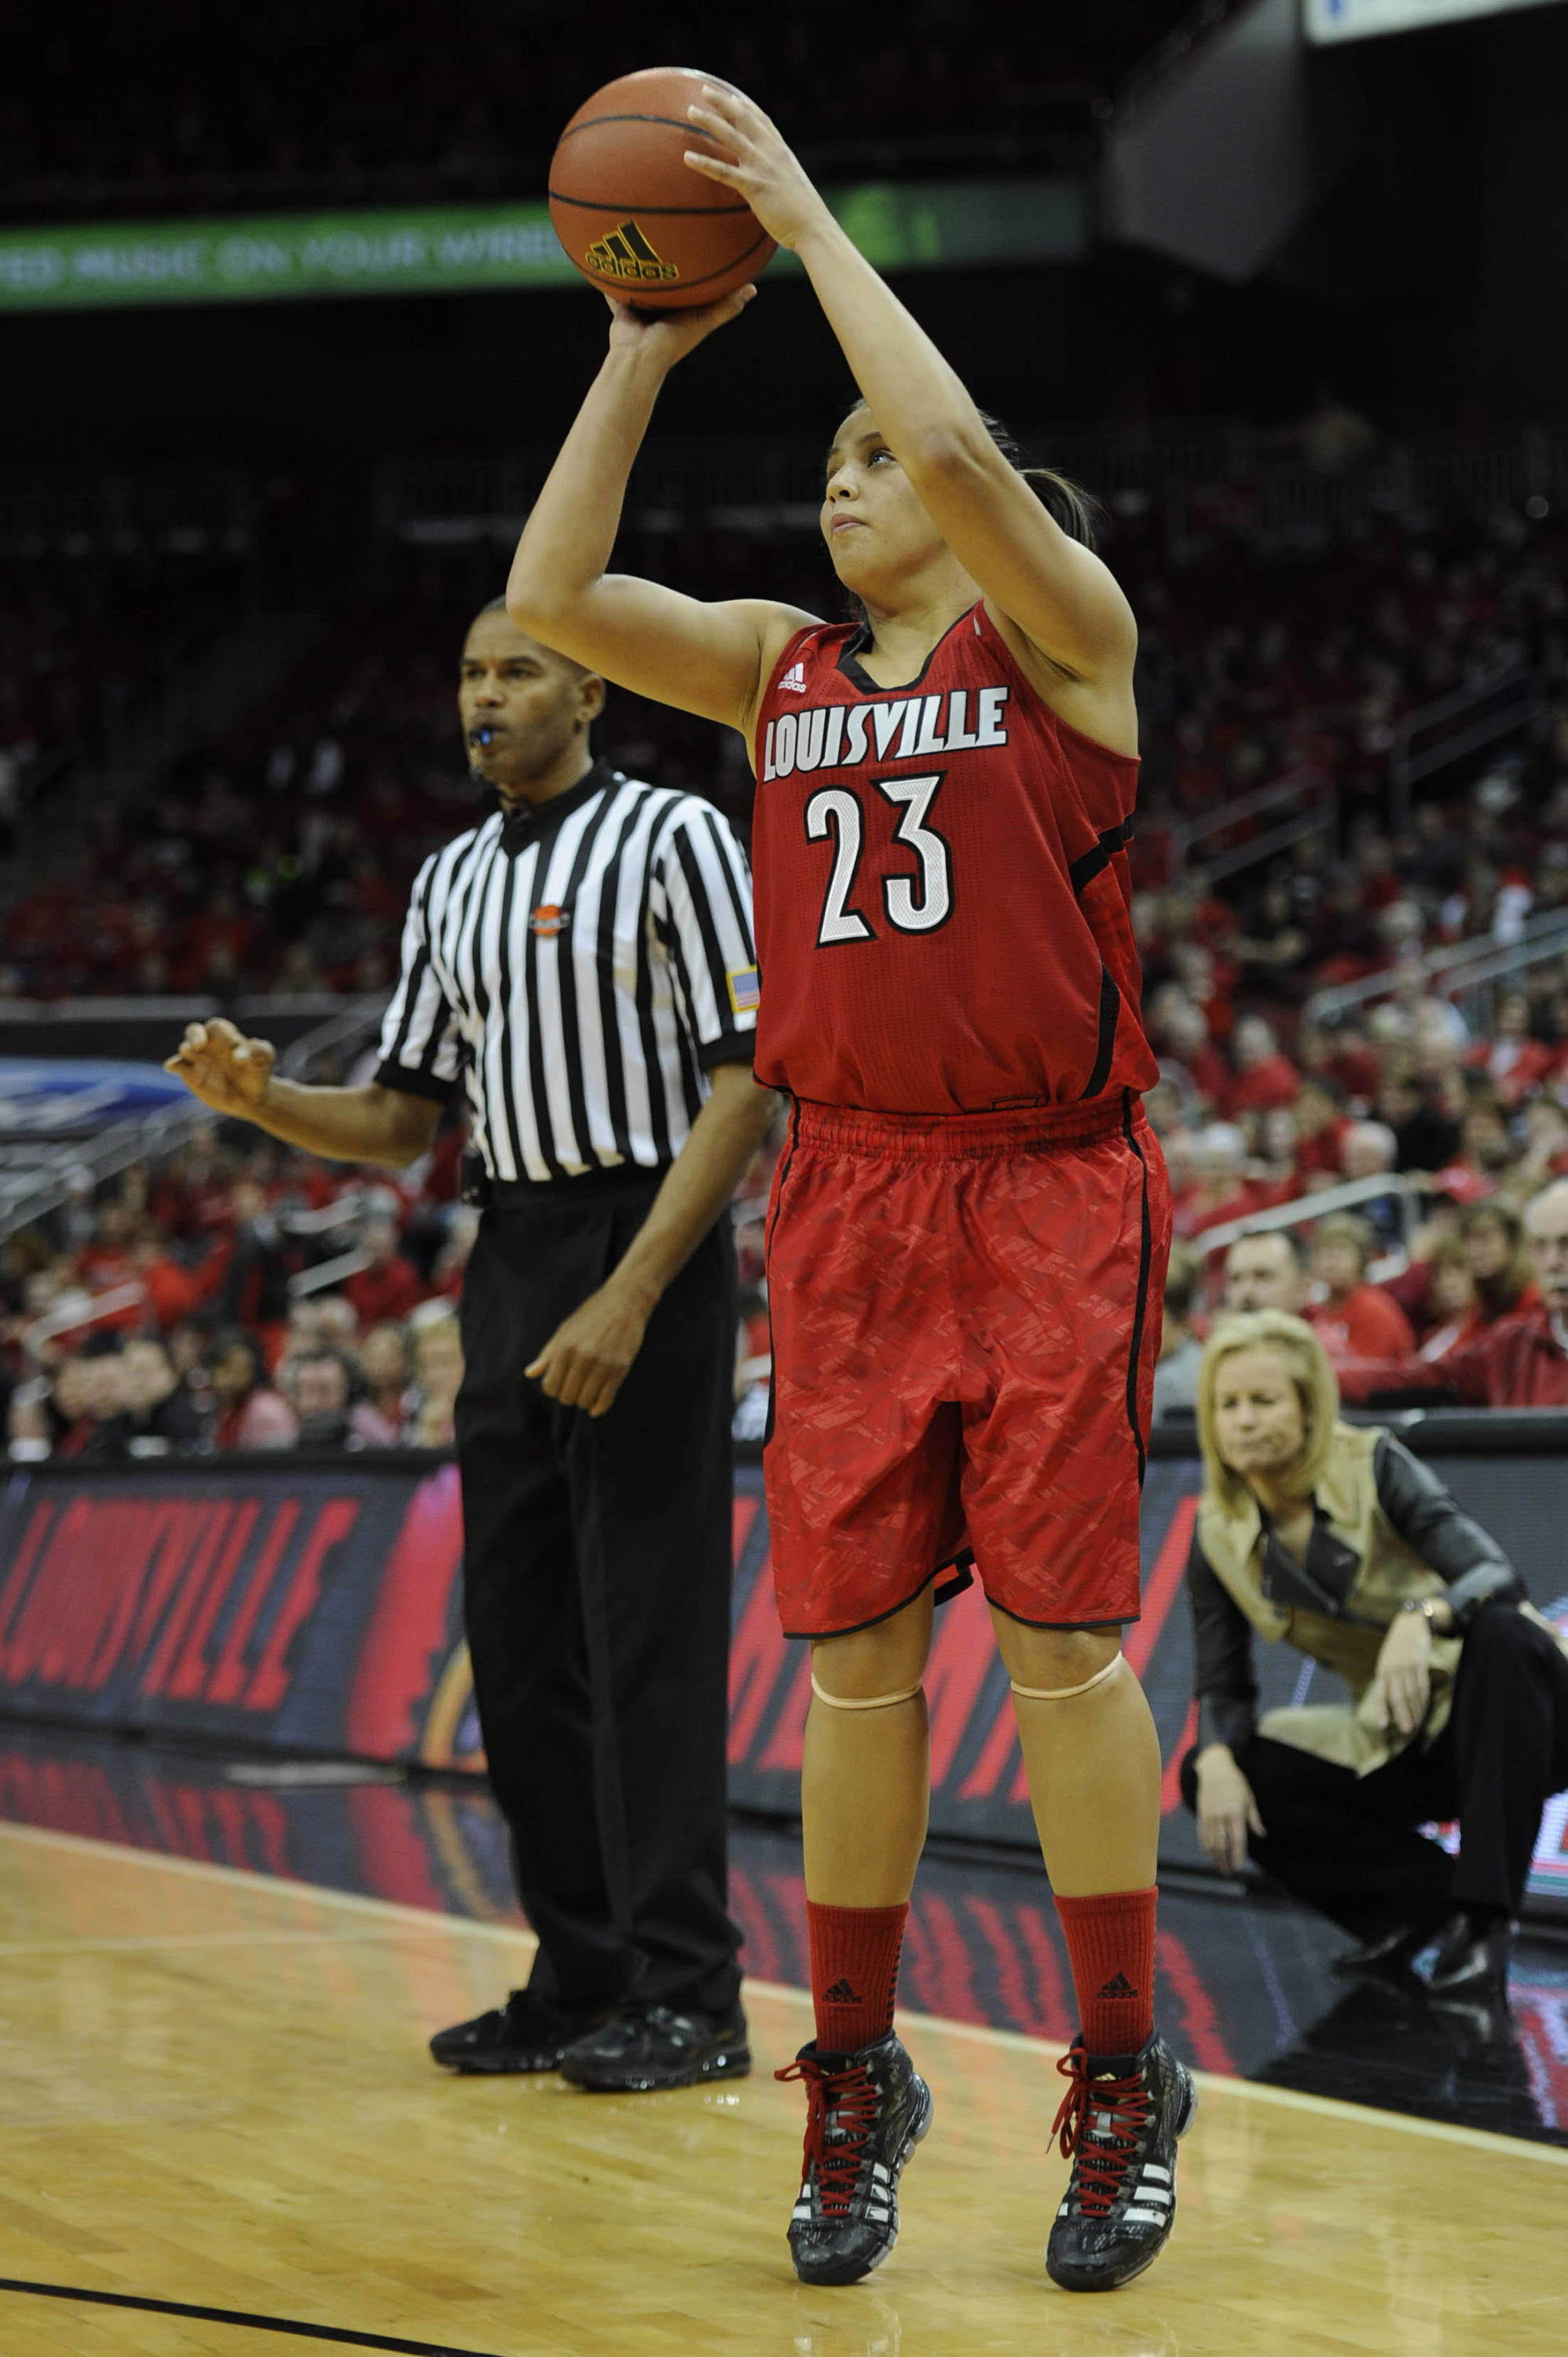 Nov 24, 2013; Louisville, KY, USA; Louisville Cardinals guard Shoni Schimmel (23) shoots against the Florida State Seminoles during the first half at KFC YUM! Center. Mandatory Credit: Jamie Rhodes-USA TODAY Sports